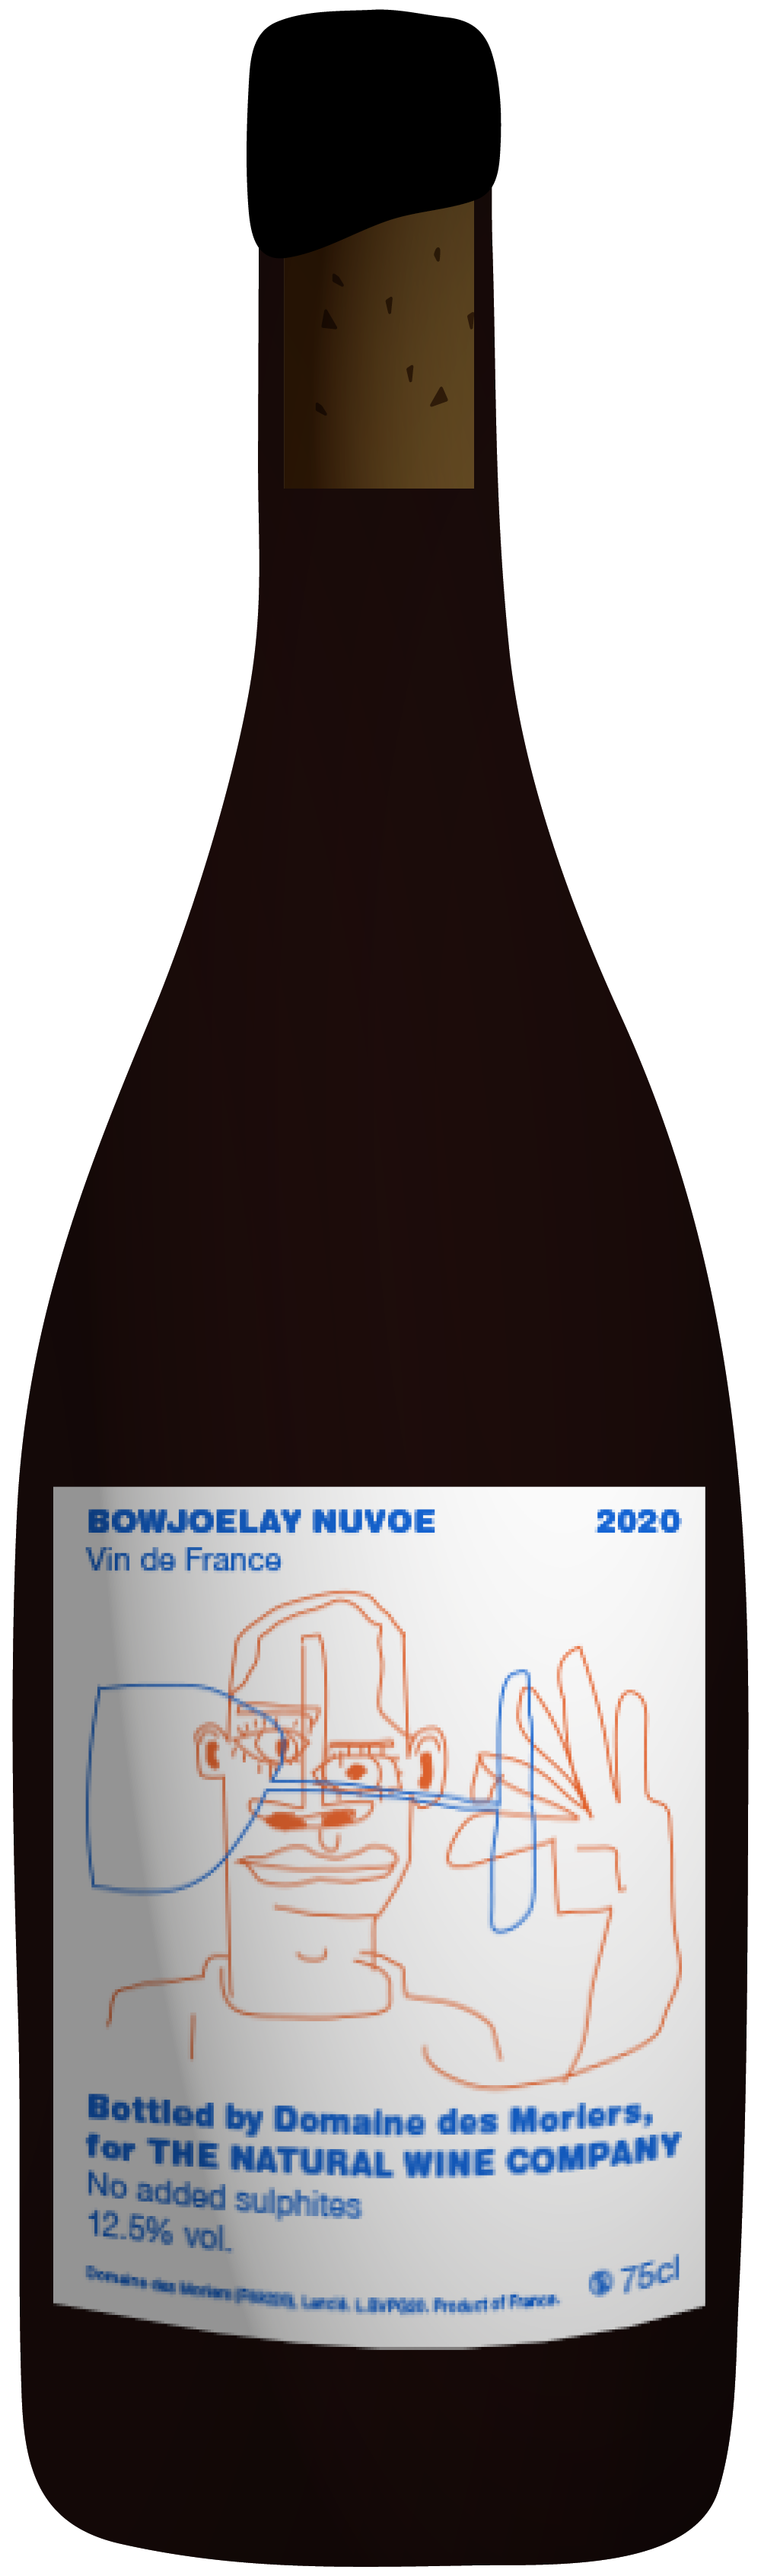 the natural wine company club december 2020 france domaine des moriers bowjoelay nuvoe 3